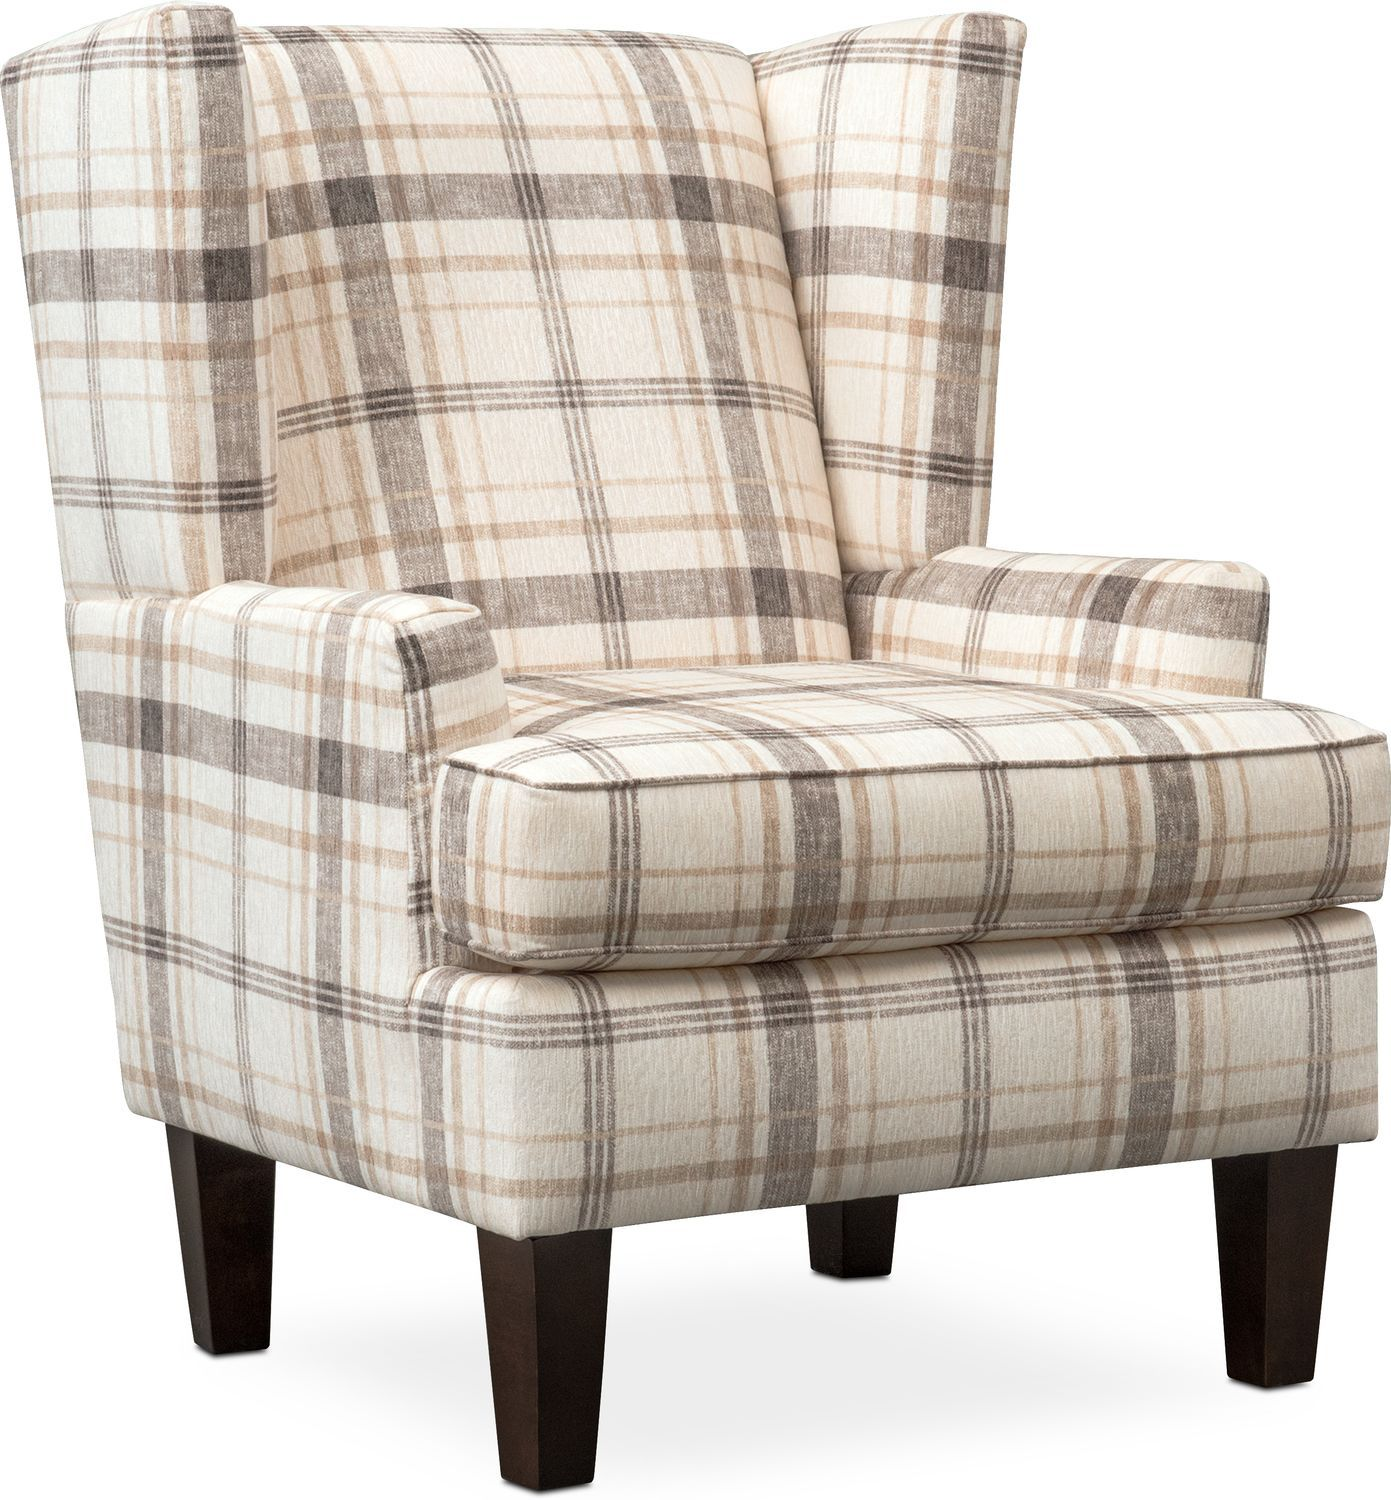 Kroehler Rowan Accent Chair In 2020 Accent Chairs Value City Furniture Furniture #value #city #living #room #chairs